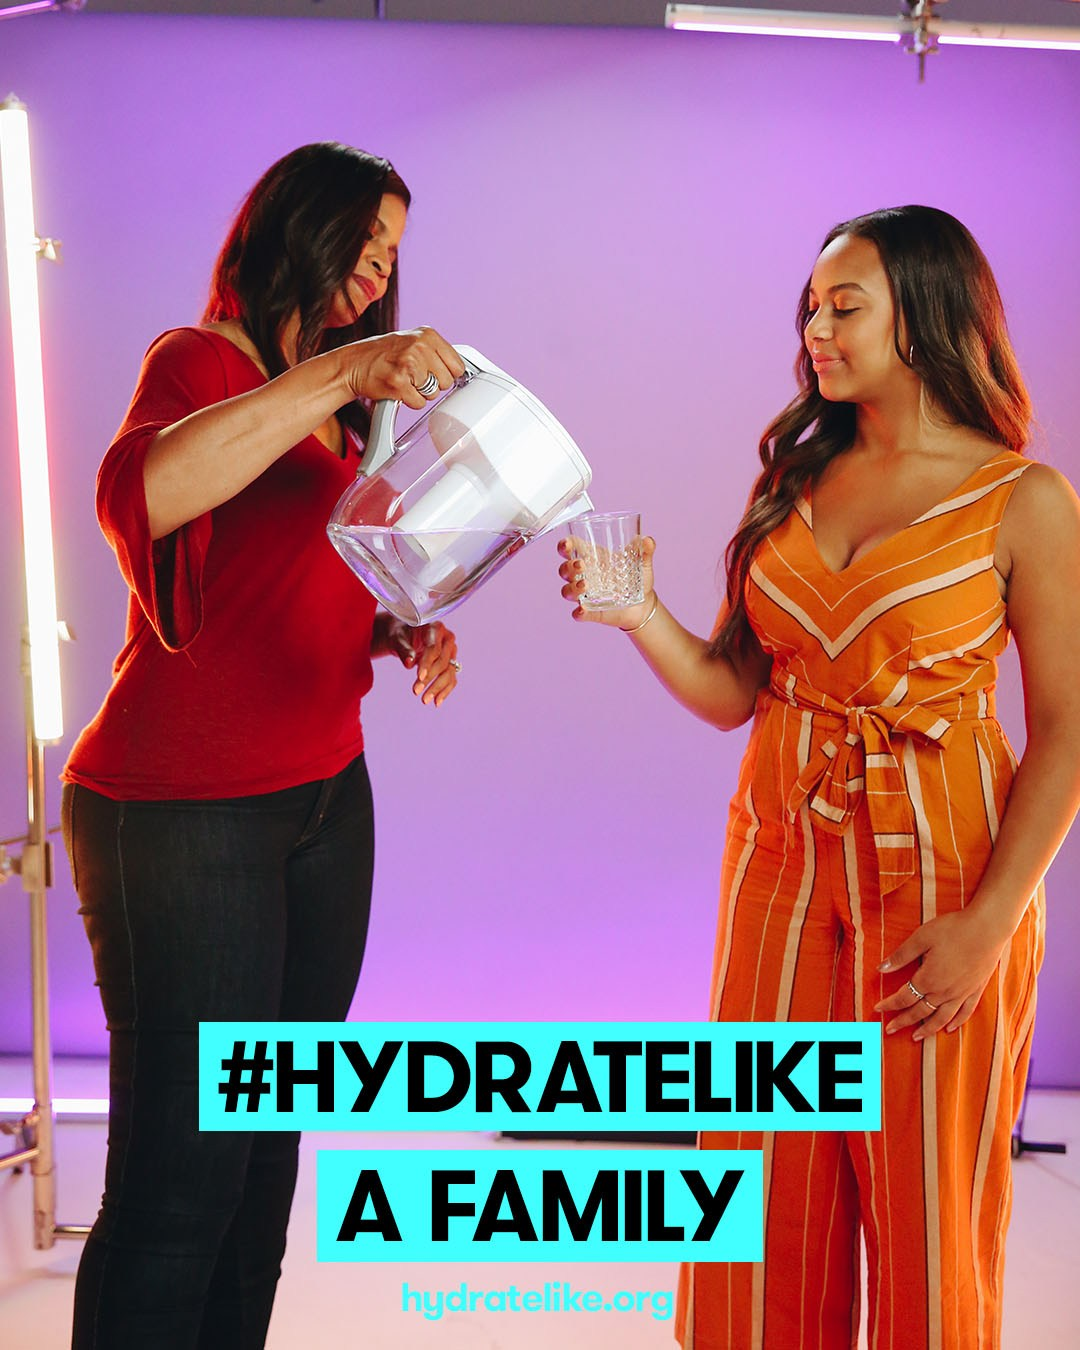 Hydrate Like Nia Sioux And Holly Frazier